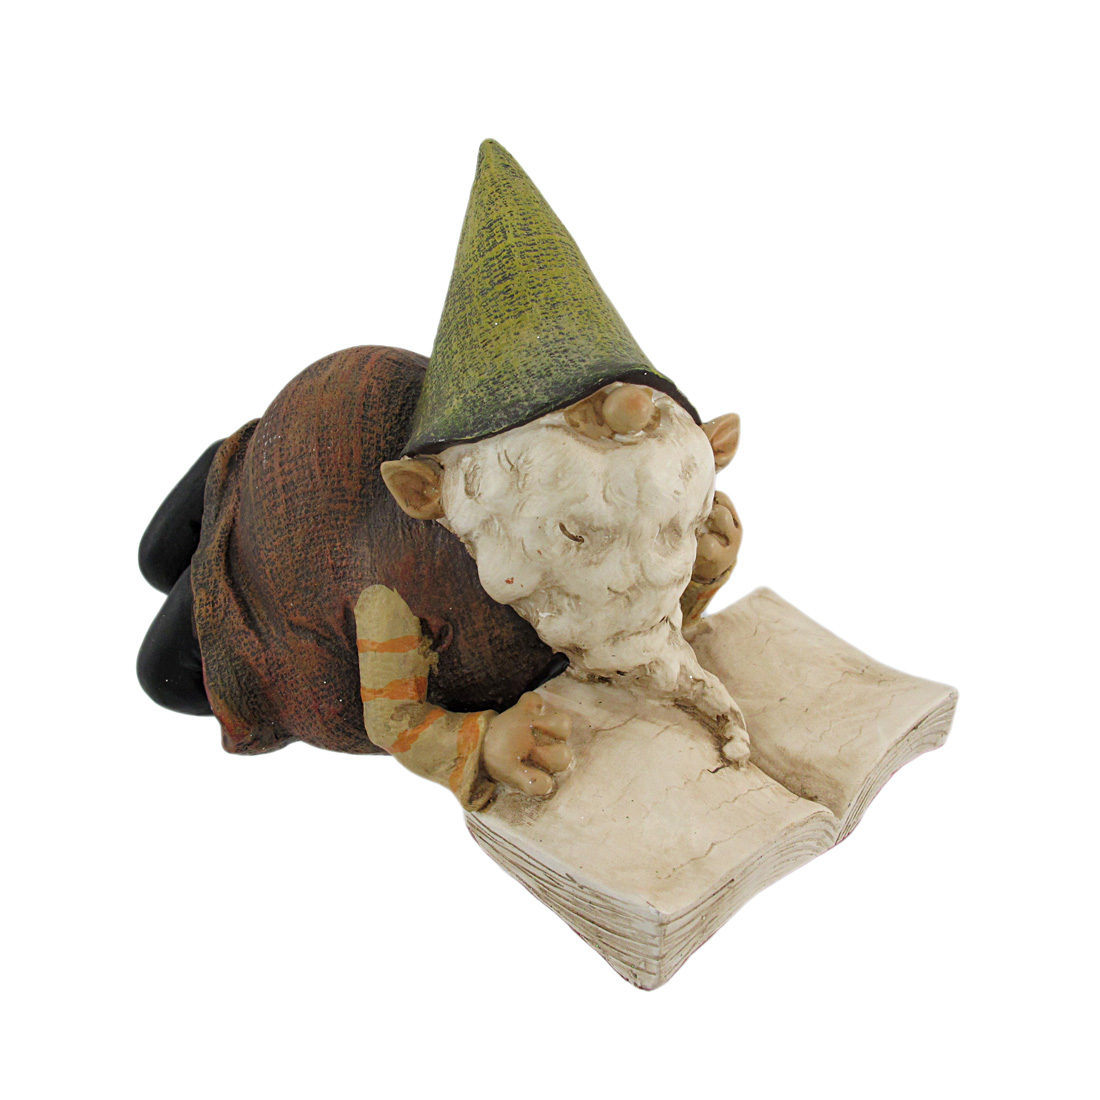 Adorable Reading Garden Gnome Hand Painted Statue by Young's Inc.